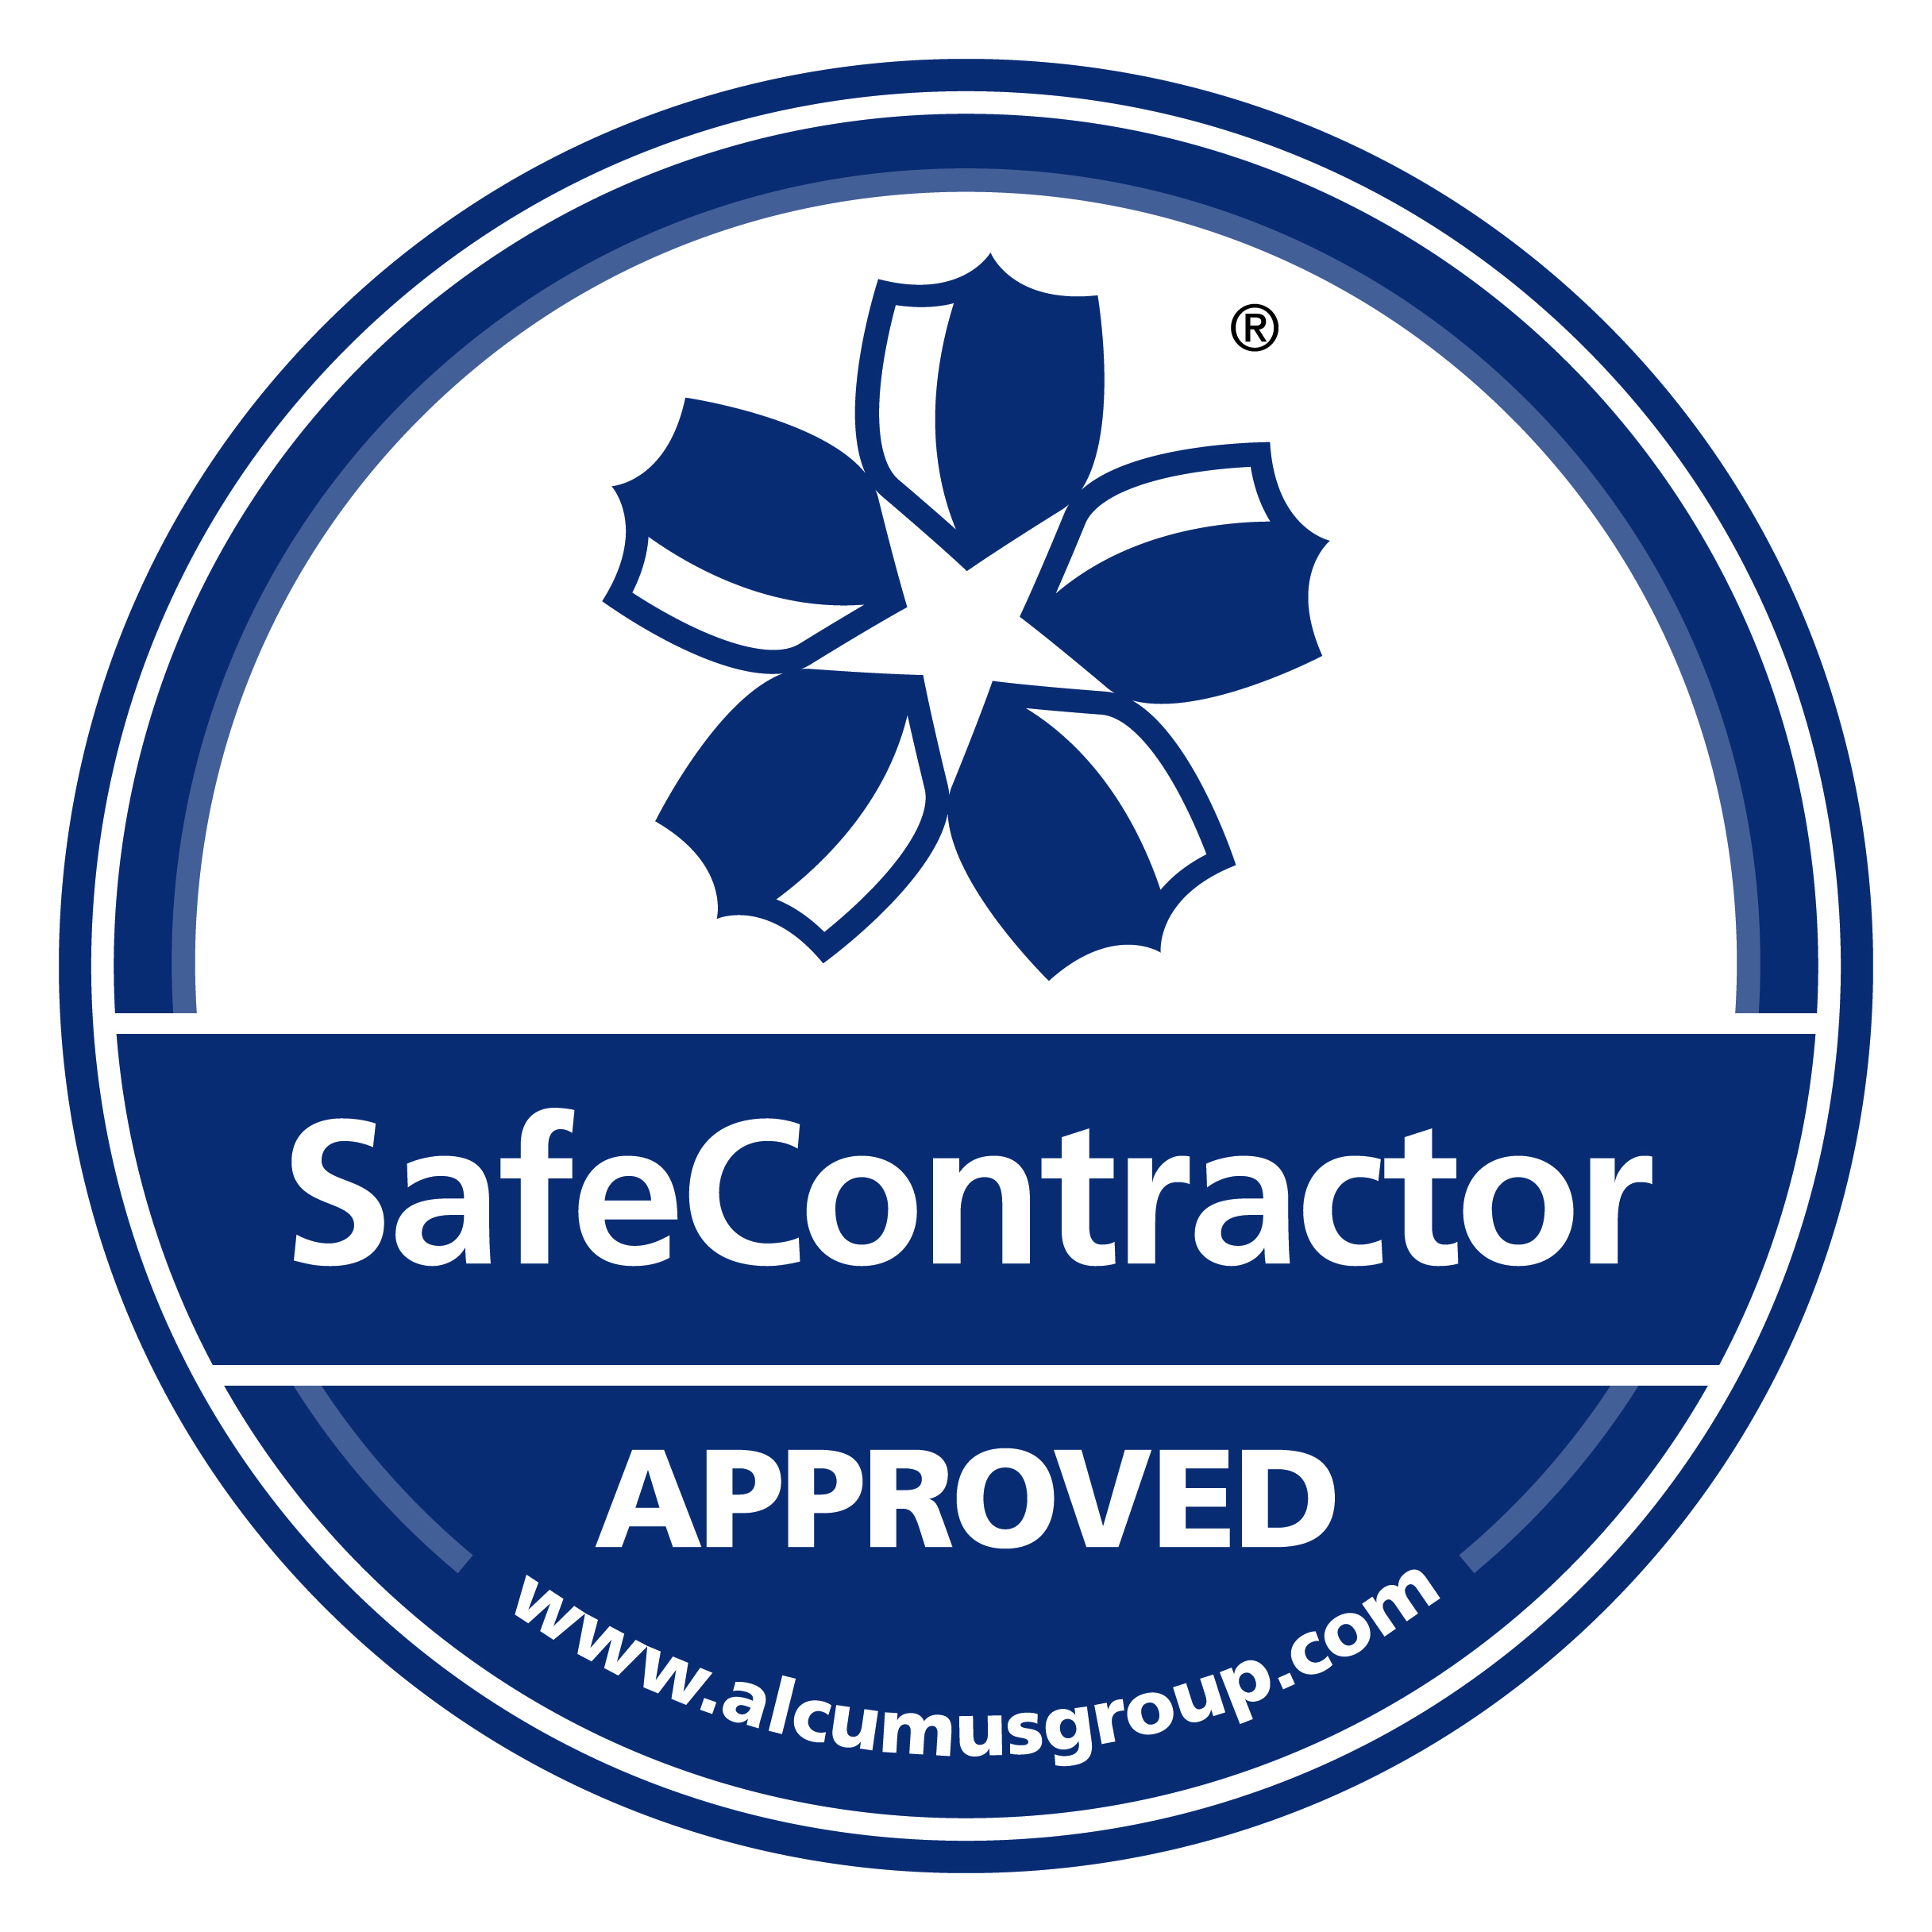 /files/library/images/horizon/client_logo/Seal colour SafeContractor Sticker.jpg